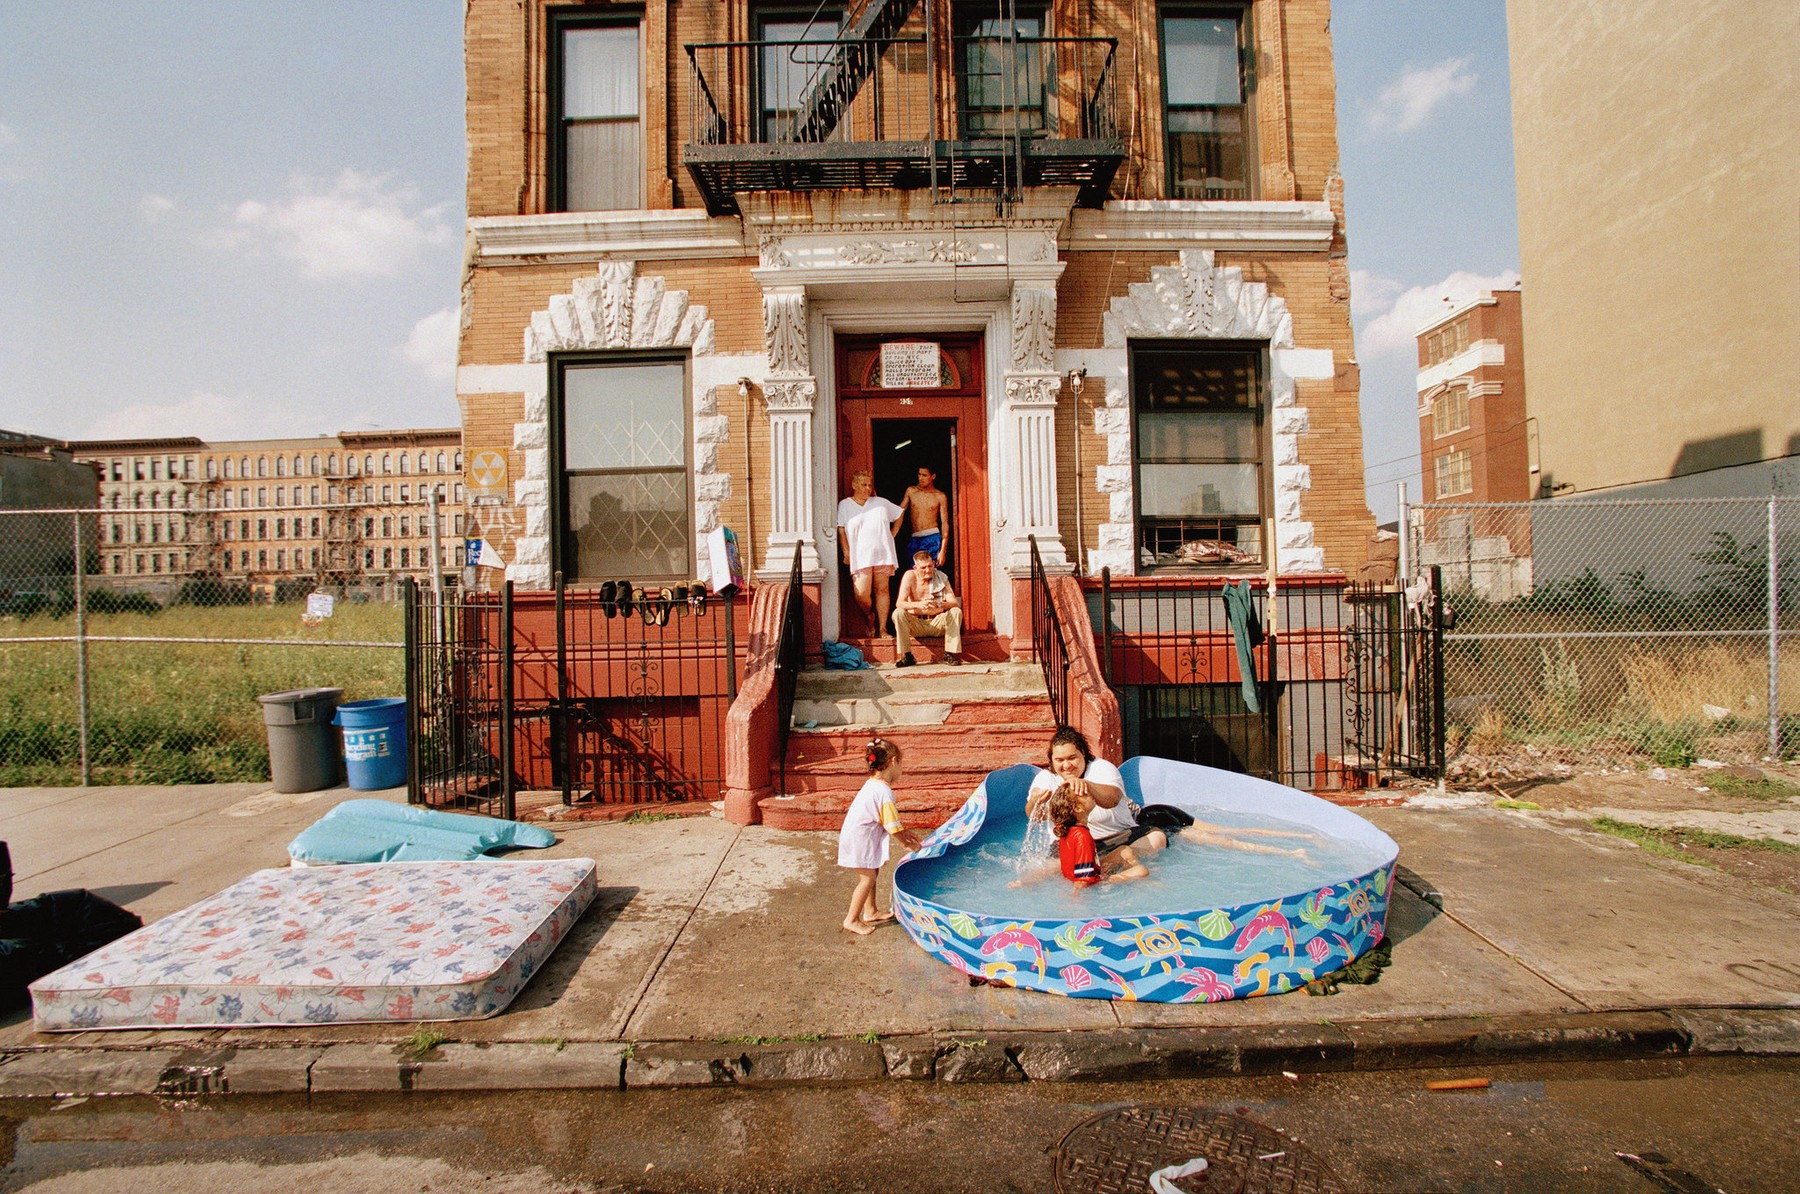 At 134th street in the South Bronx, a wading pool was a source of relief for bathers of all ages. July 1999. Credit James Estrin/The New York Times